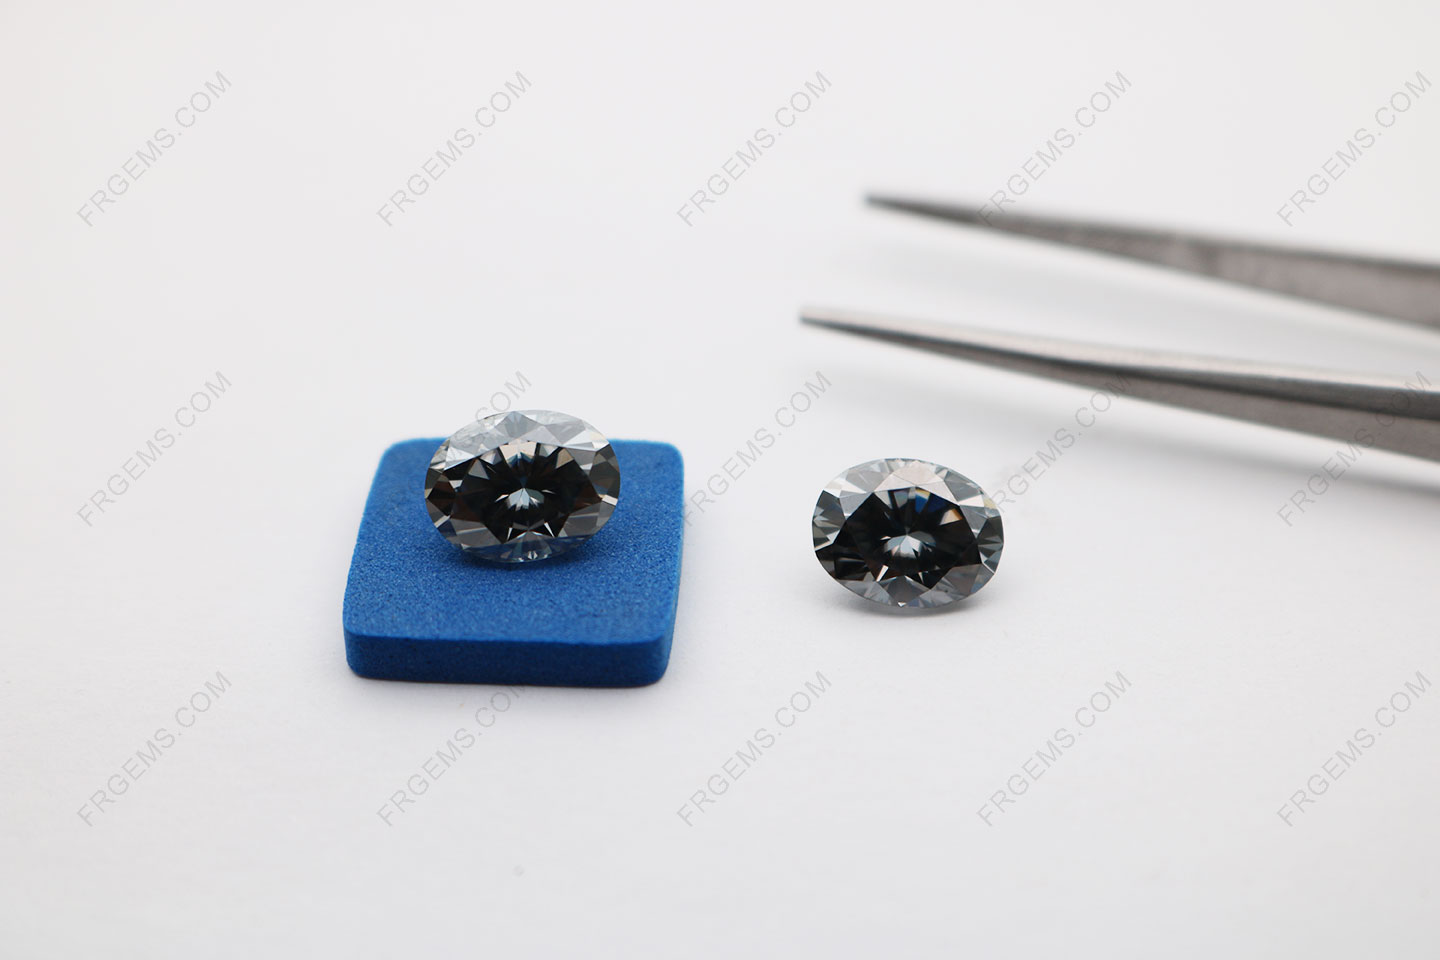 Loose Moissanite Dark Gray Color Oval Shape Faceted Cut 10x8mm 3ct gemstones